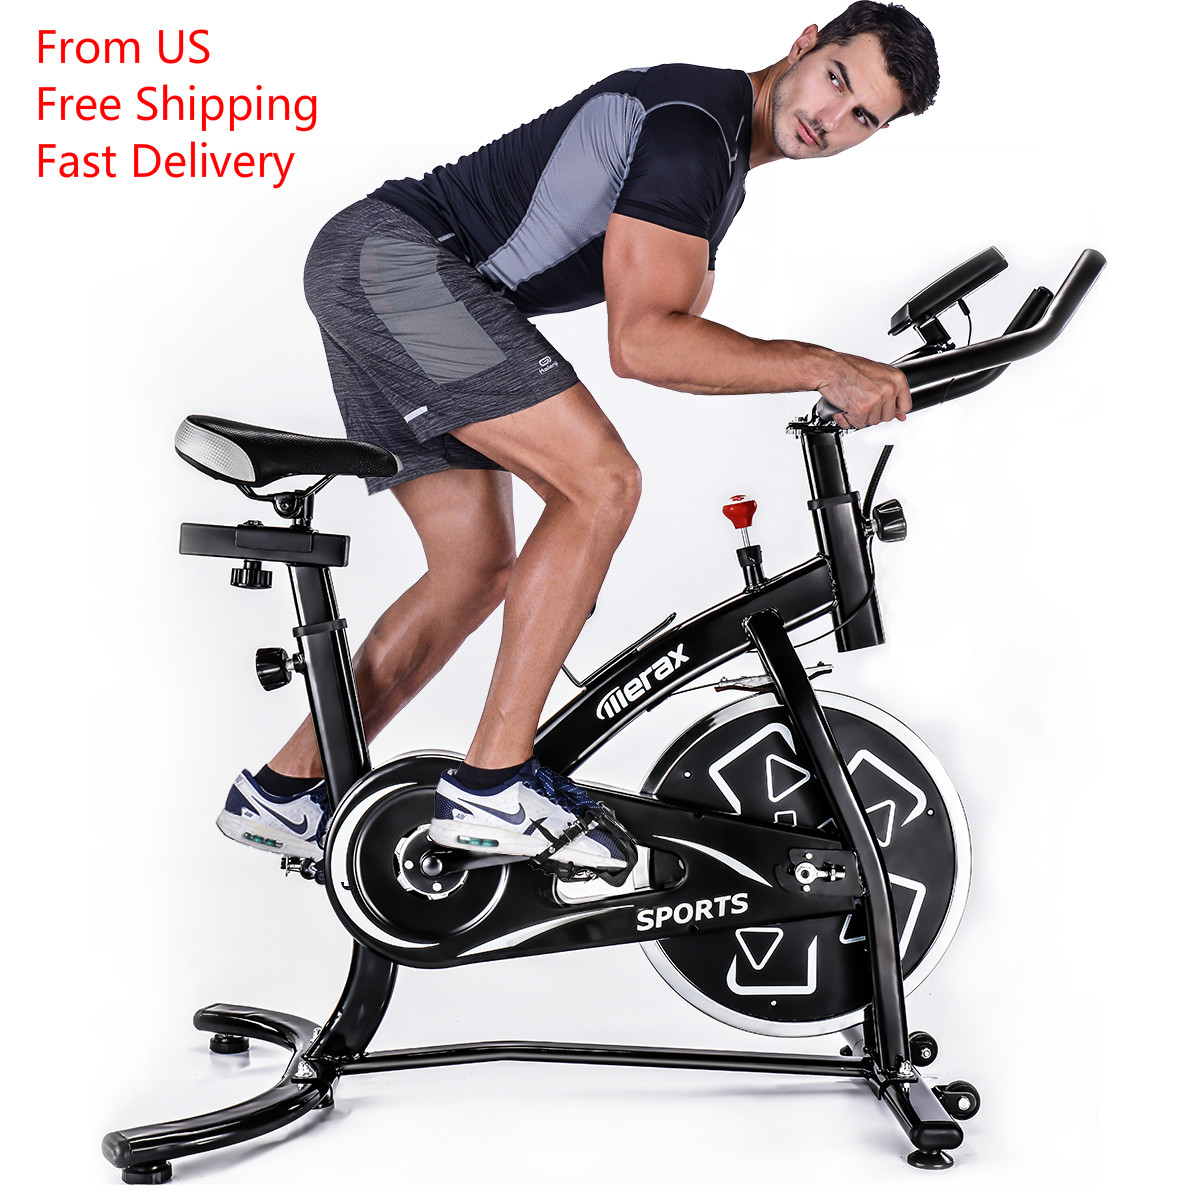 TREXM S280 Professional Indoor Cycling Bike Belt Drive Exercise Bike With 22lbs Flywheel Gym Bike Fitness Equipment LED Display